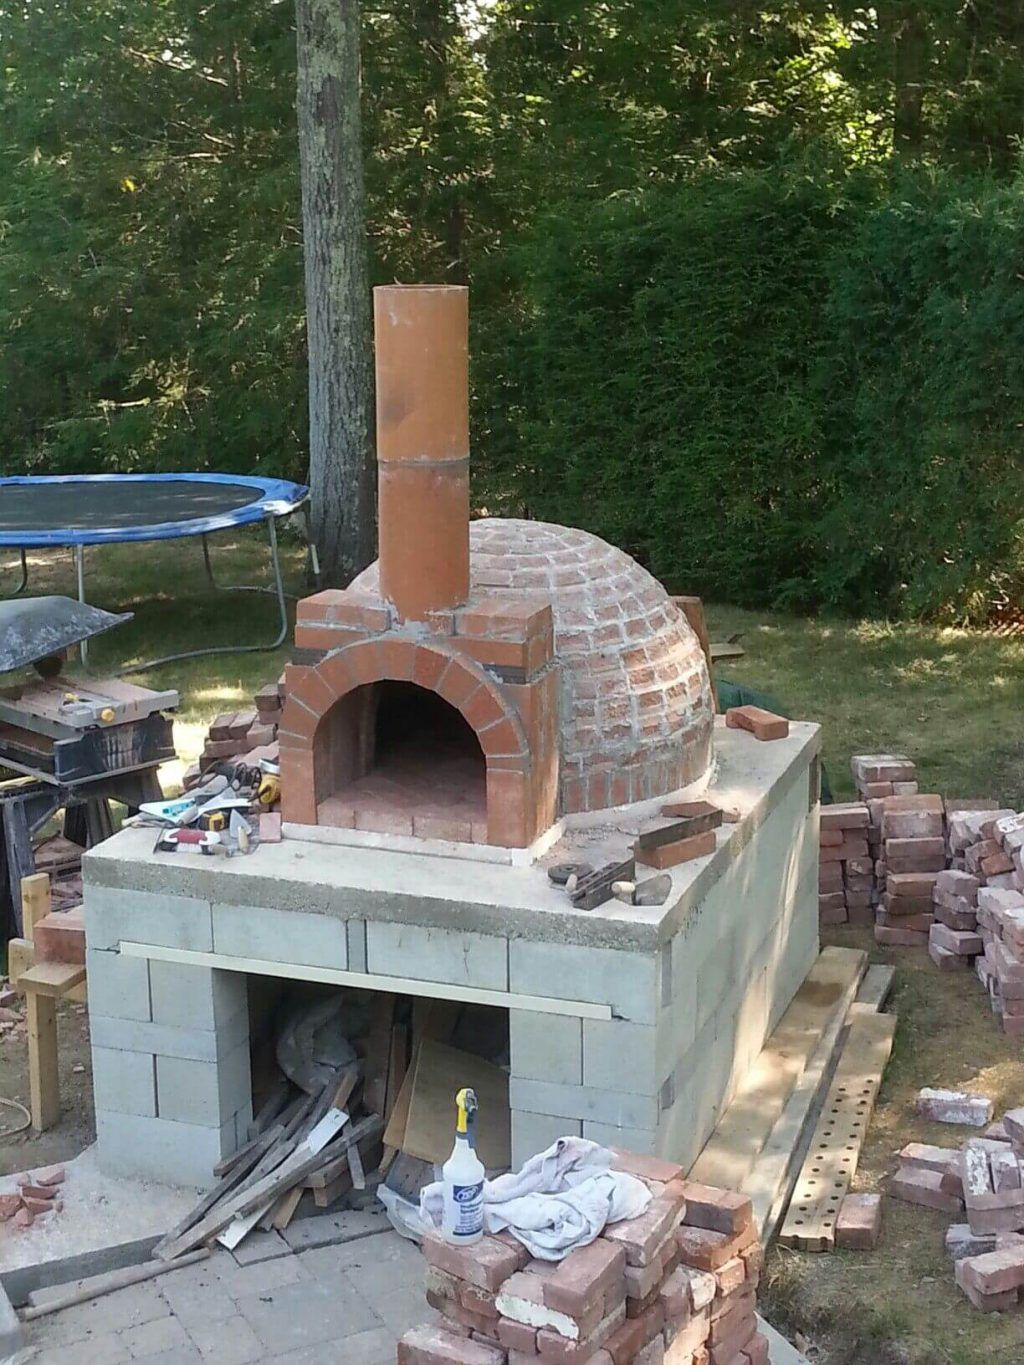 How To Build An Outdoor Pizza Oven Guide Step By Step Pizza Oven Outdoor Outdoor Pizza Backyard Pizza Oven Backyard diy pizza oven